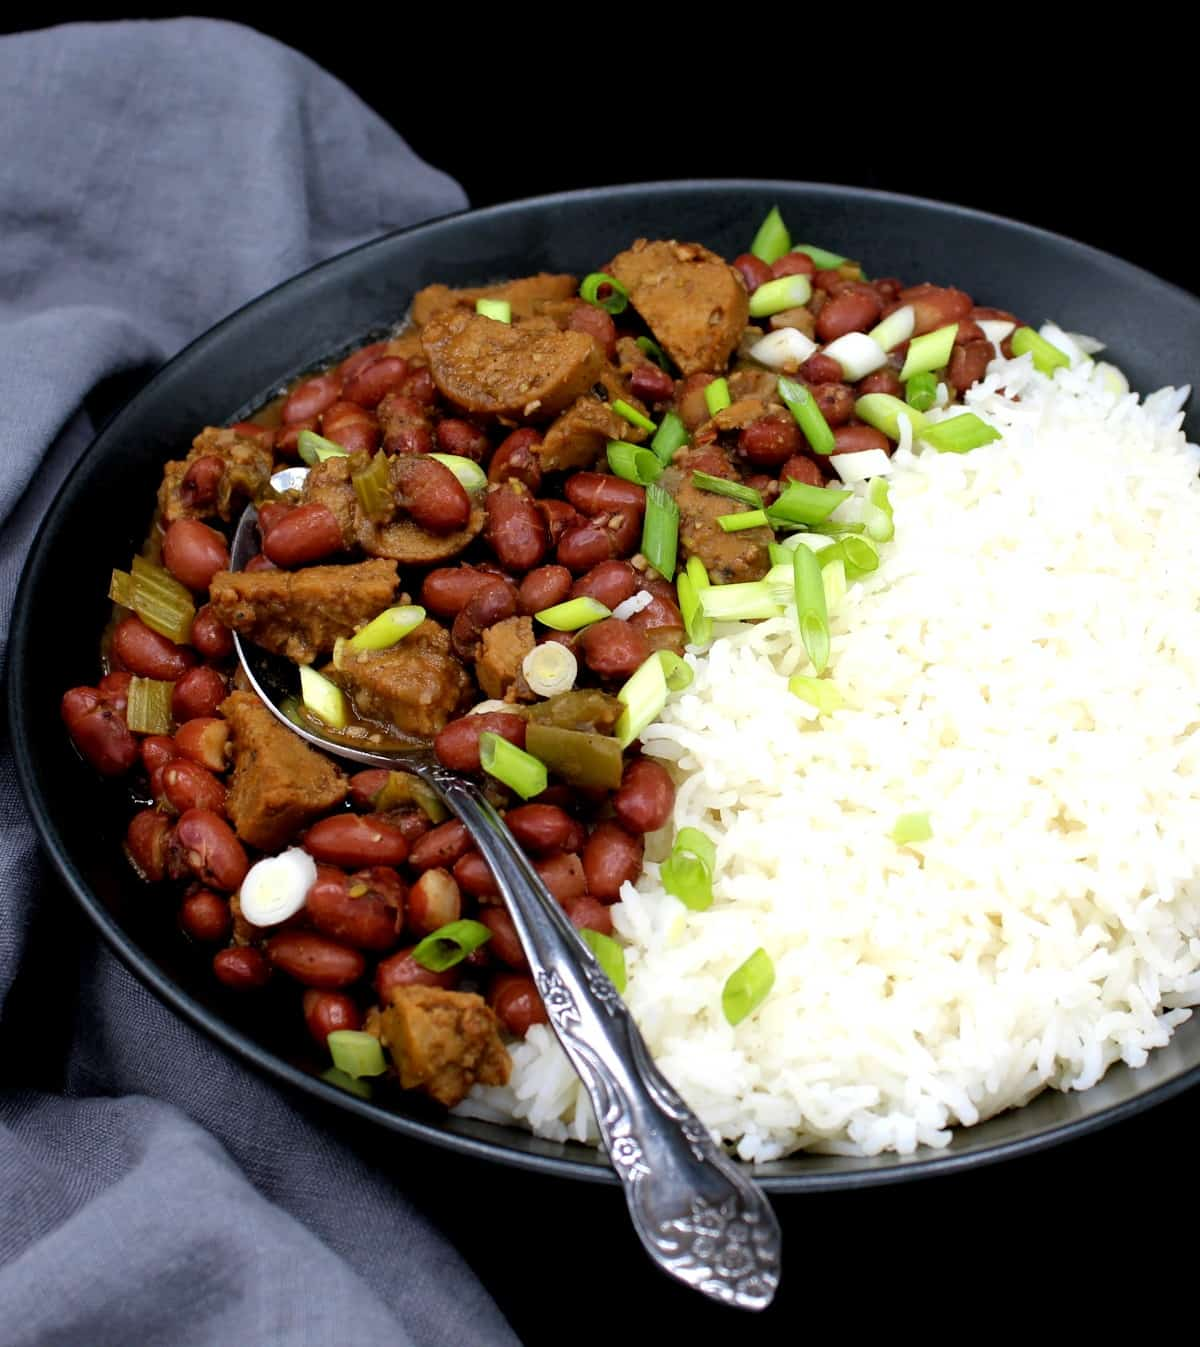 A closeup of vegan red beans and rice garnished with scaliions in a black bowl with a decorative spoon against a gray napkin